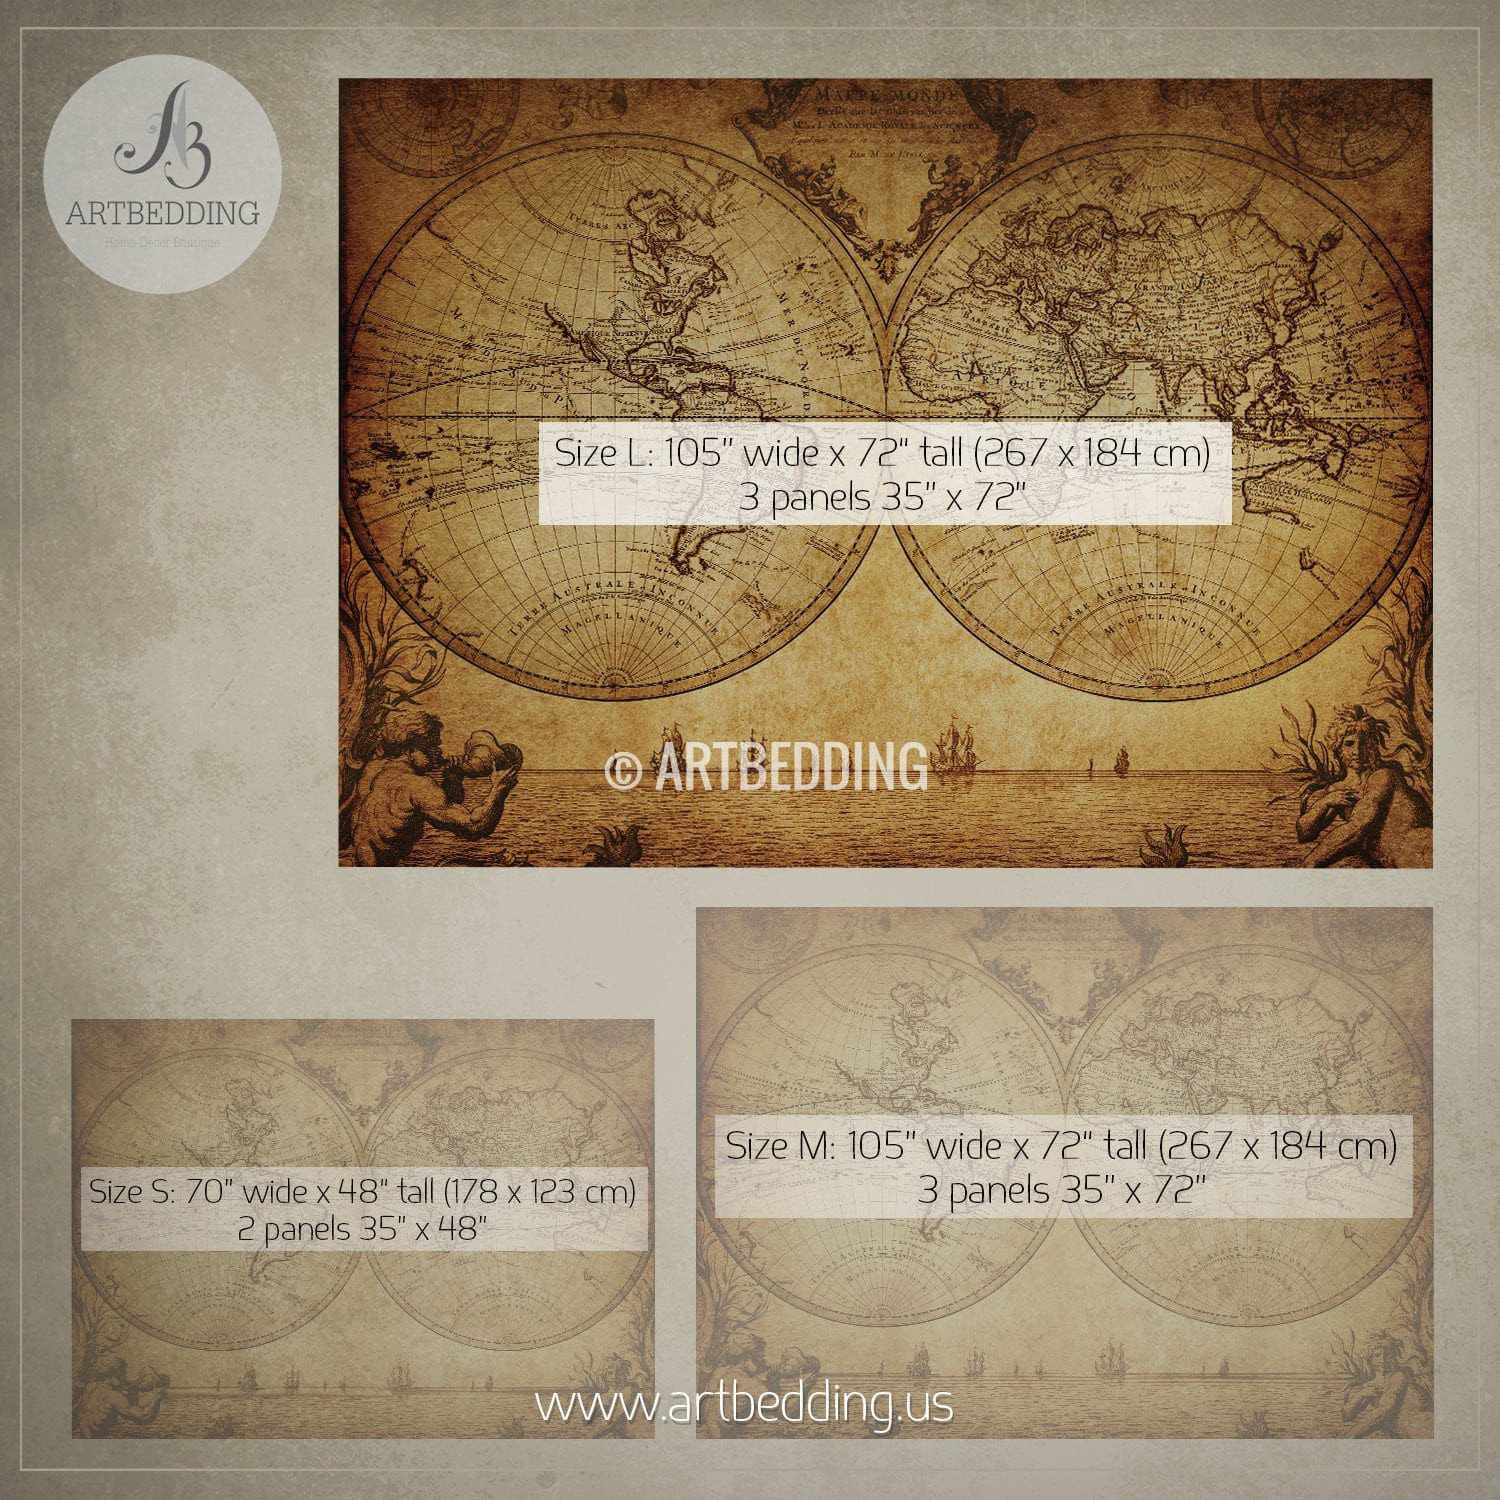 Vintage map wall mural self adhesive photo mural artbedding - Vintage home decorating collection ...